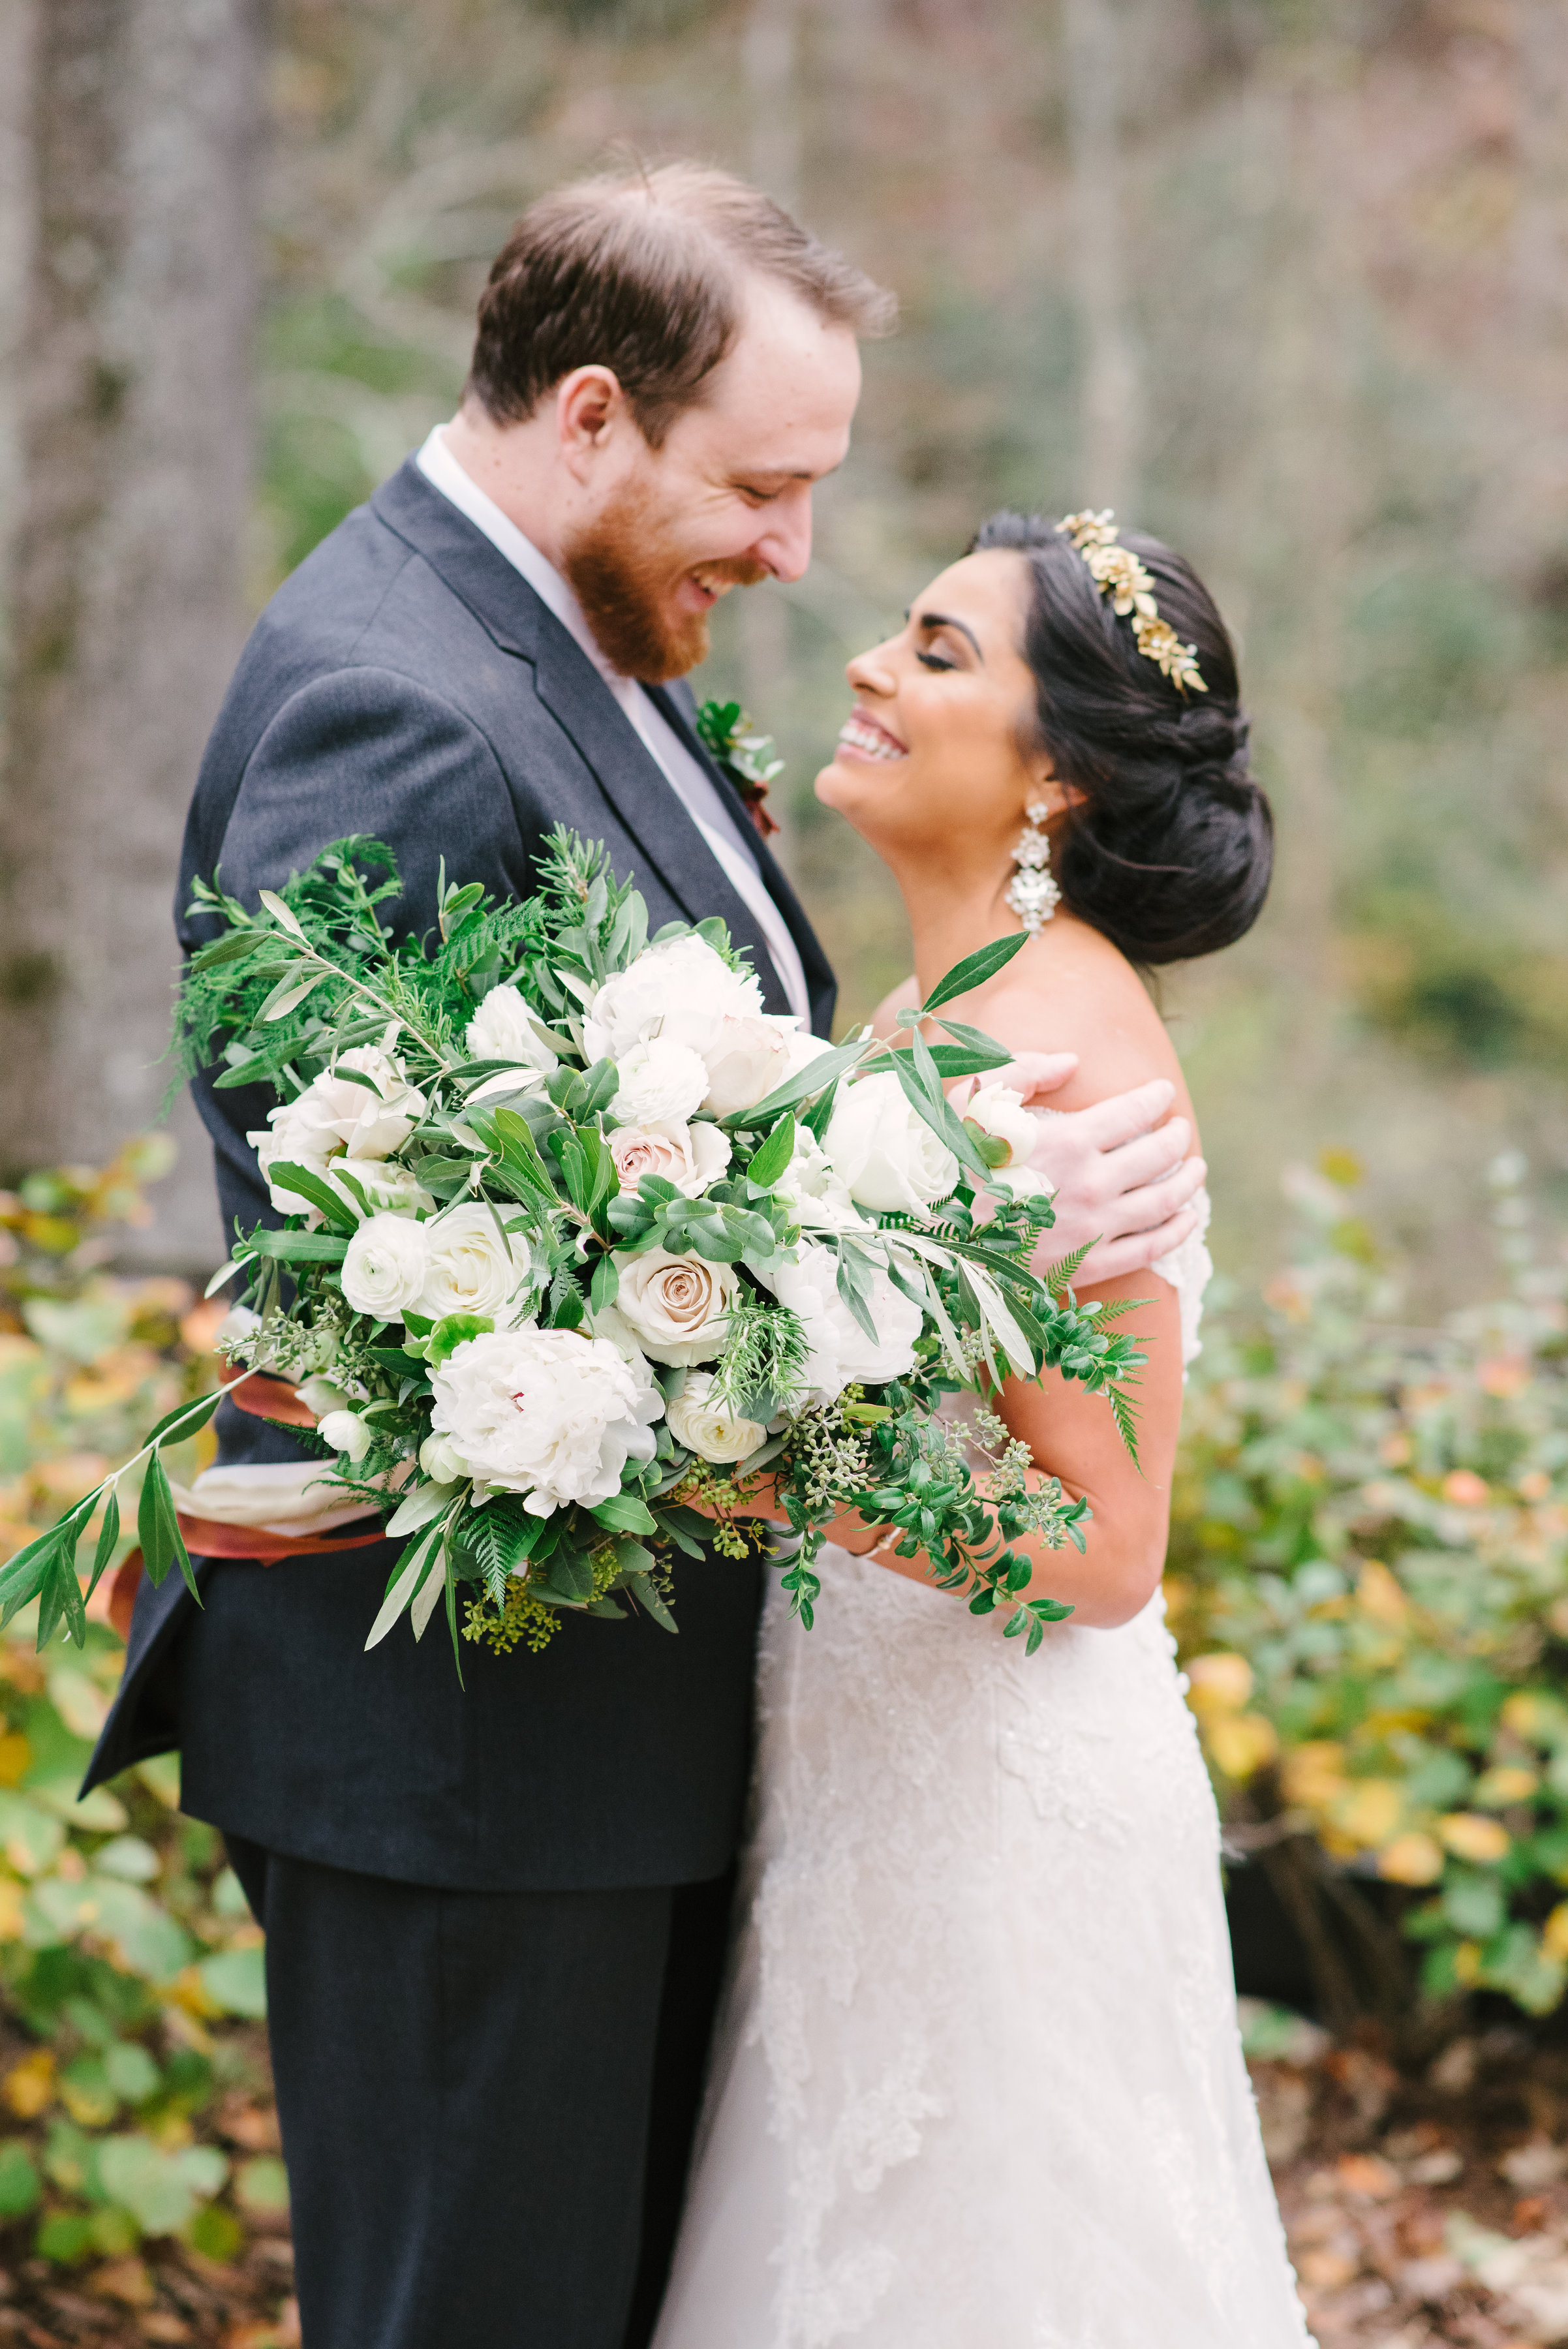 The two lovebirds, Rosalina and Doug. Living happily ever after :) Hair by Renee Locher Makeup and Hair